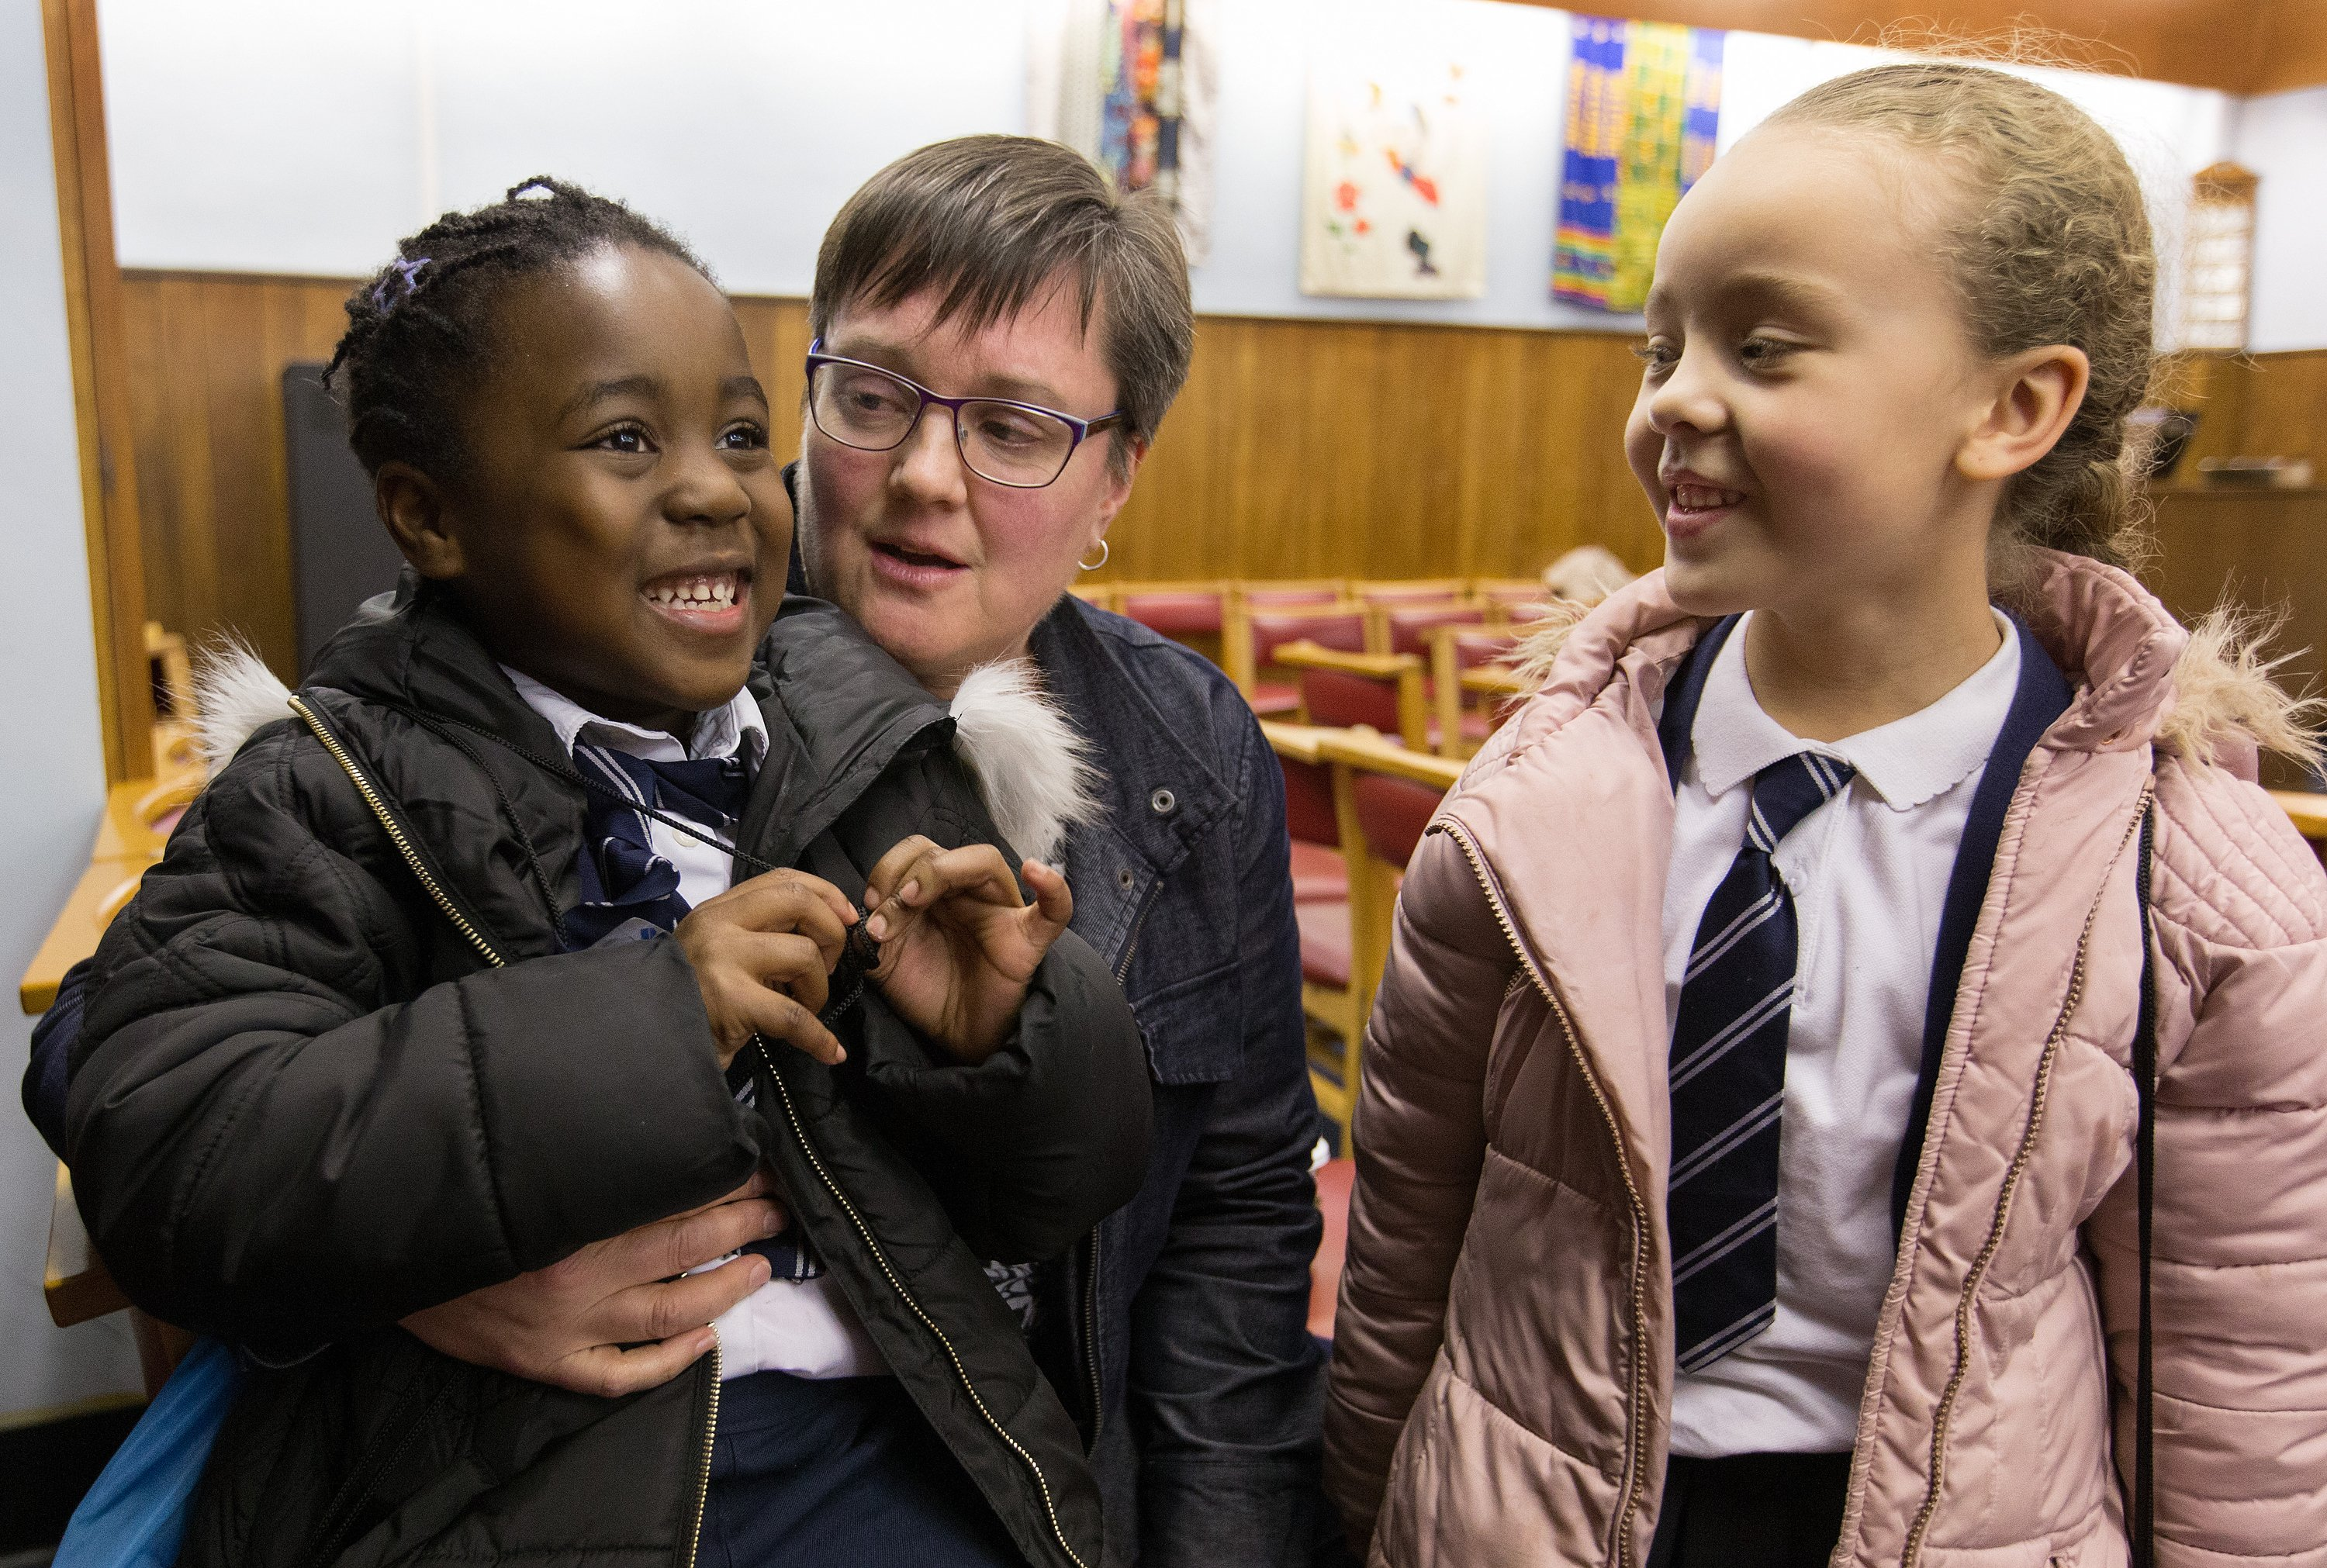 Nwarebea Baffoe (left) and Rebecca Henry, both age 6, stop by after school to visit with the Rev. Janet Corlett at Bermondsey Central Hall Methodist Church in London. Photo by Mike DuBose, UMNS.